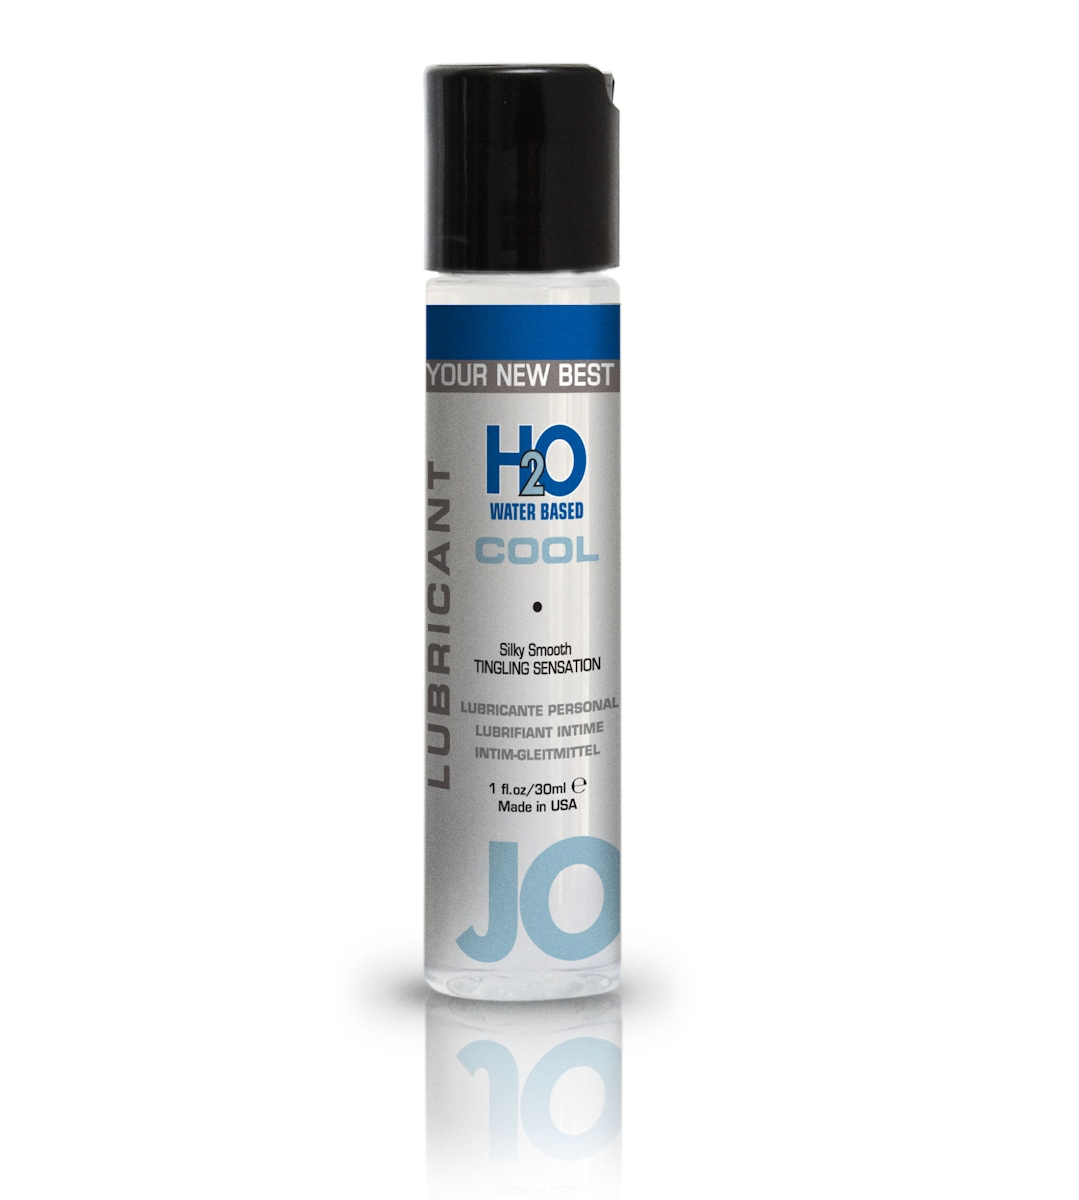 Jo H2O cooling lube